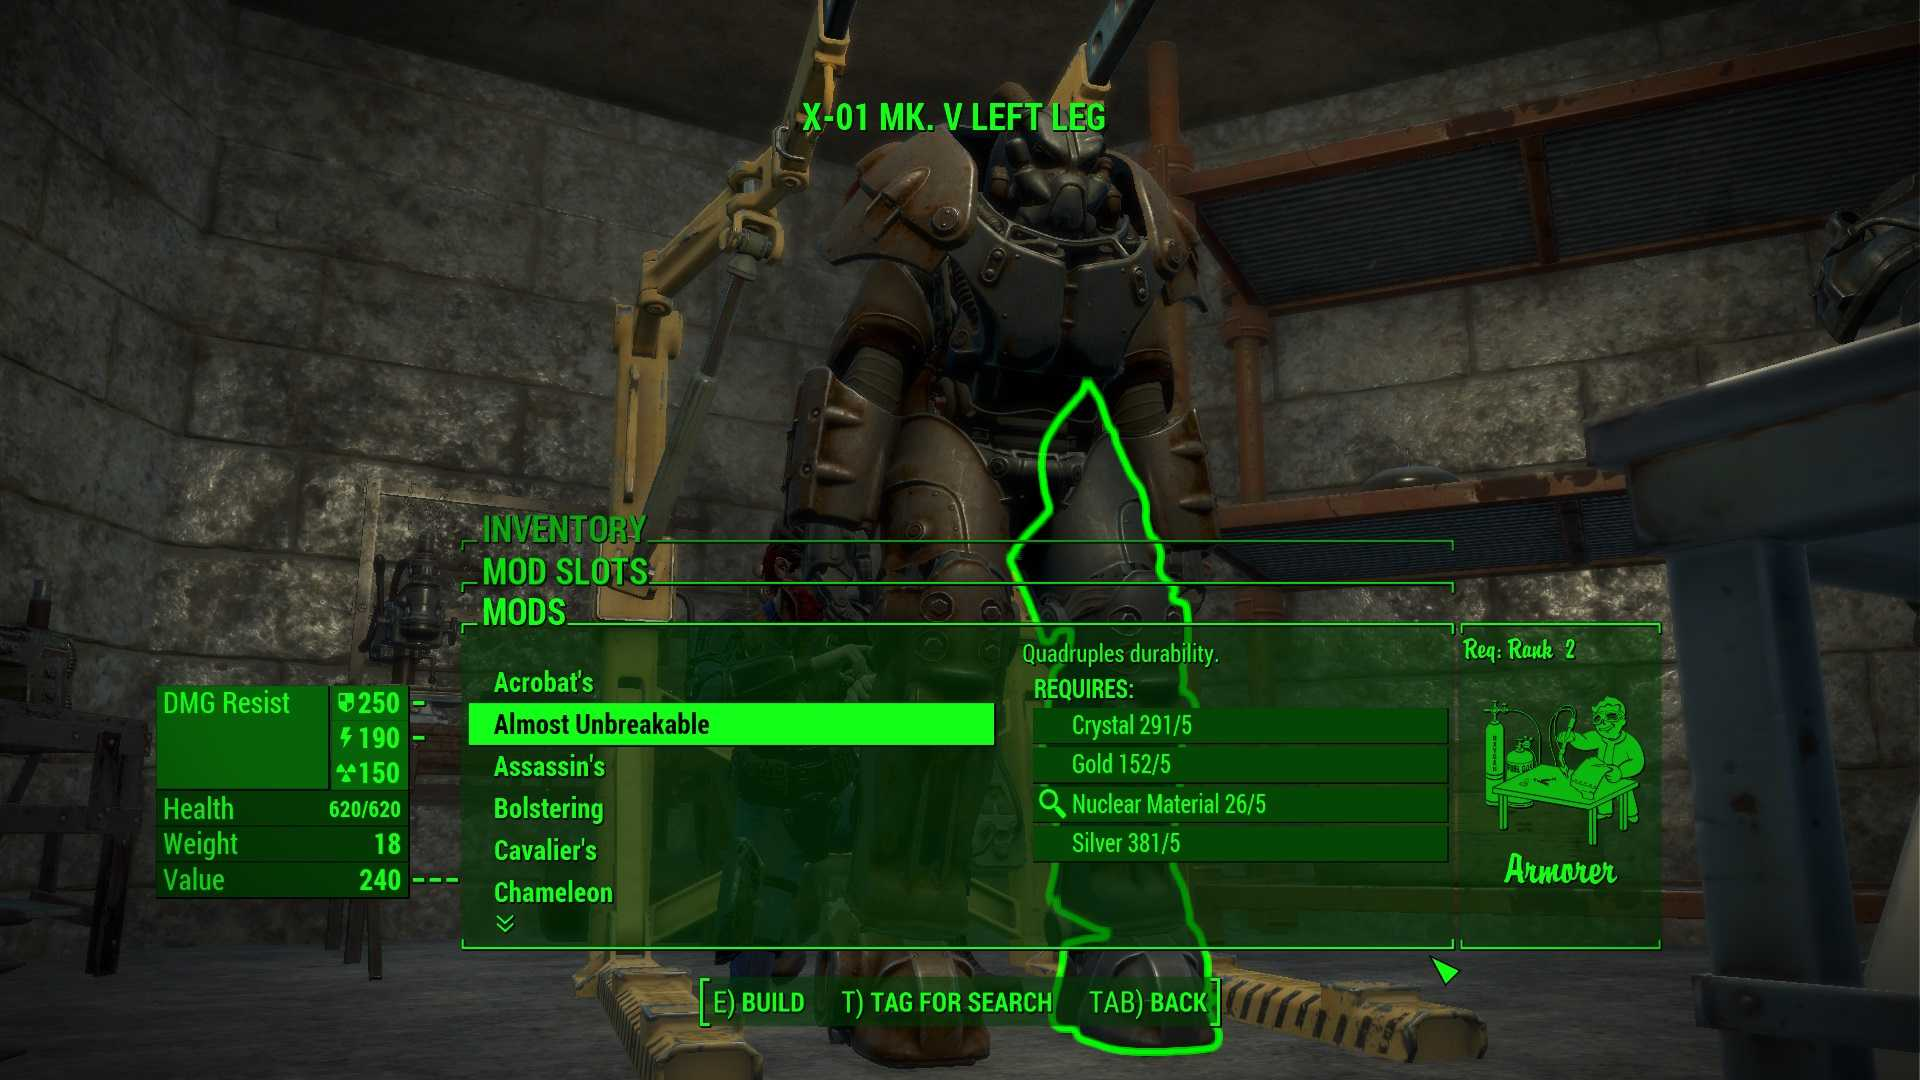 Fallout 4 Devs Modify Mod Site To Make Uploads Easier and Safer